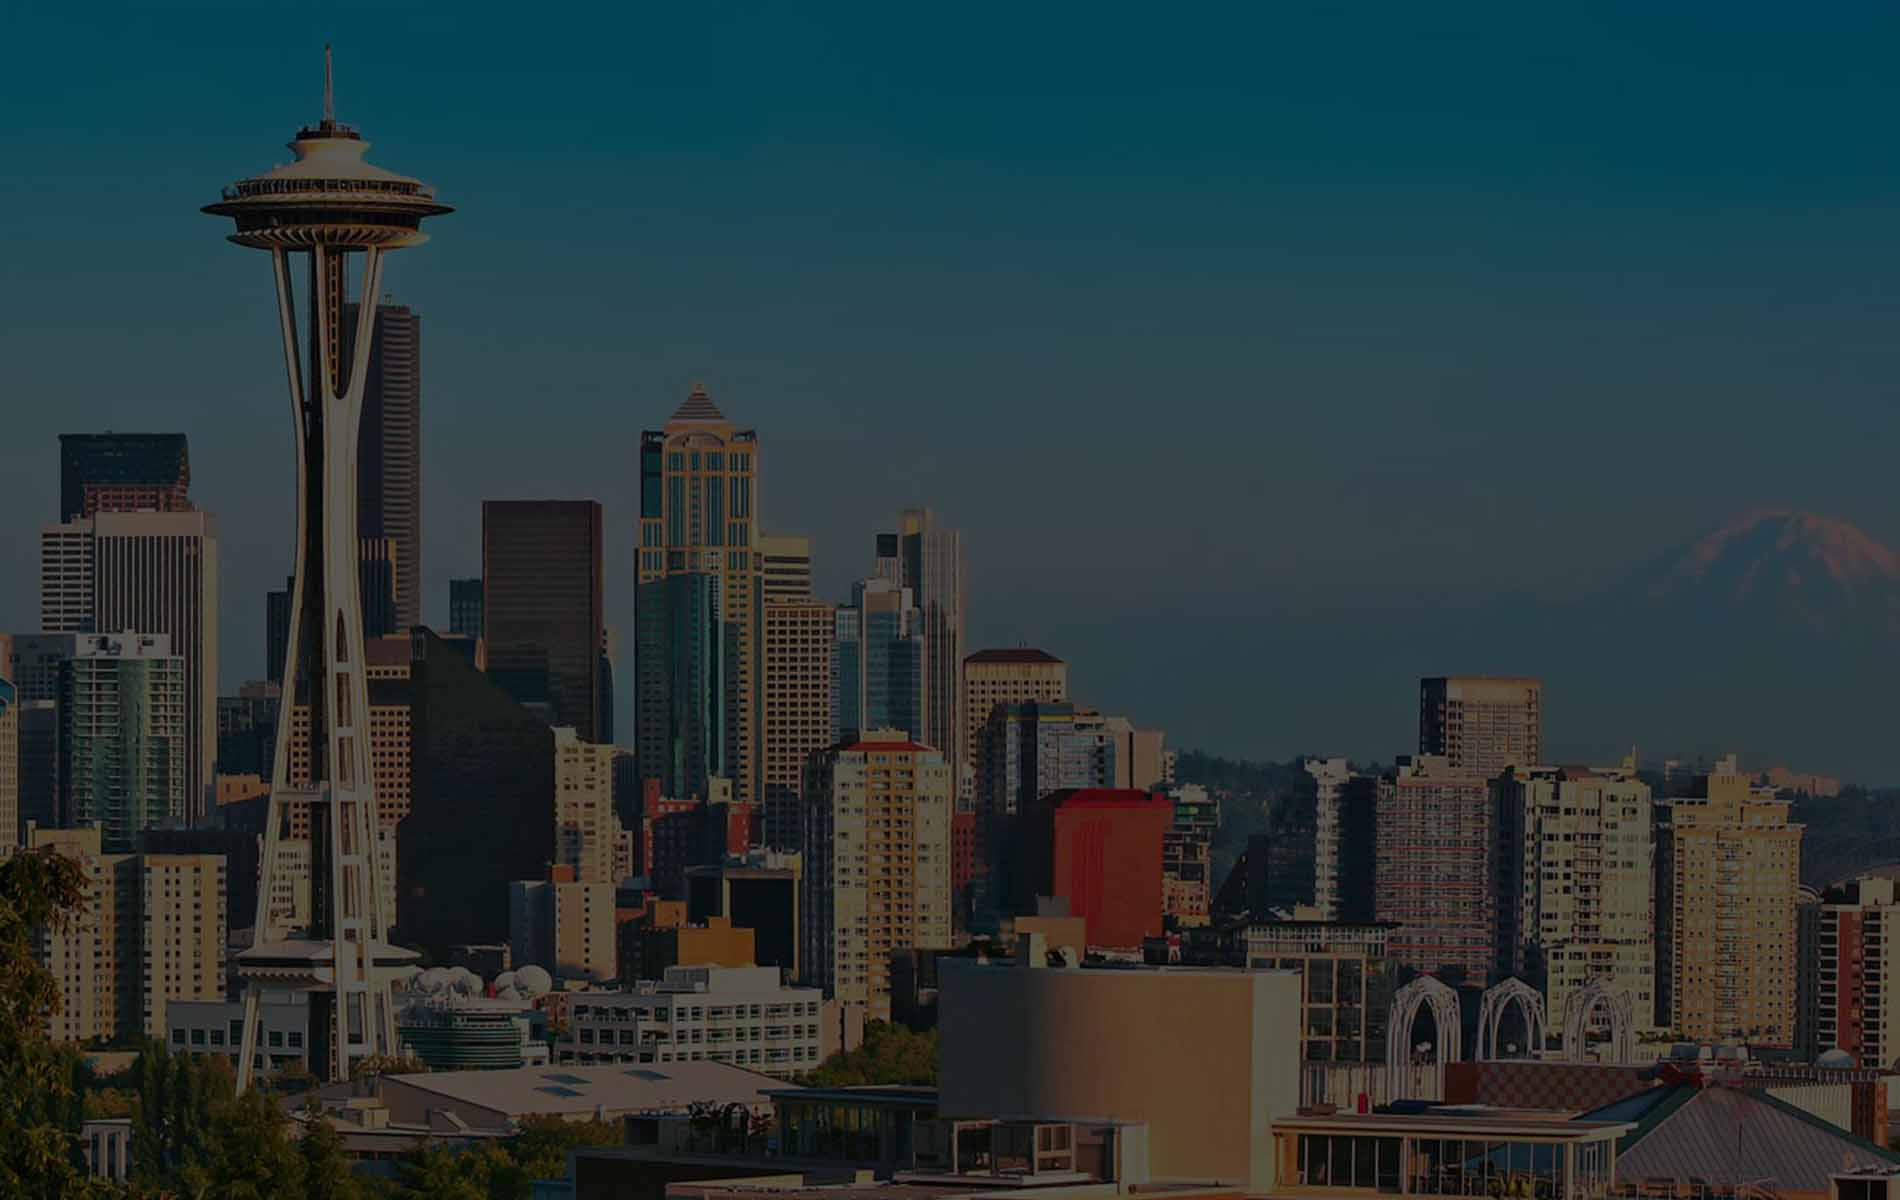 <br>PACIFIC NORTHWEST EXPERTS IN IT SOLUTIONS &#038; SERVICES